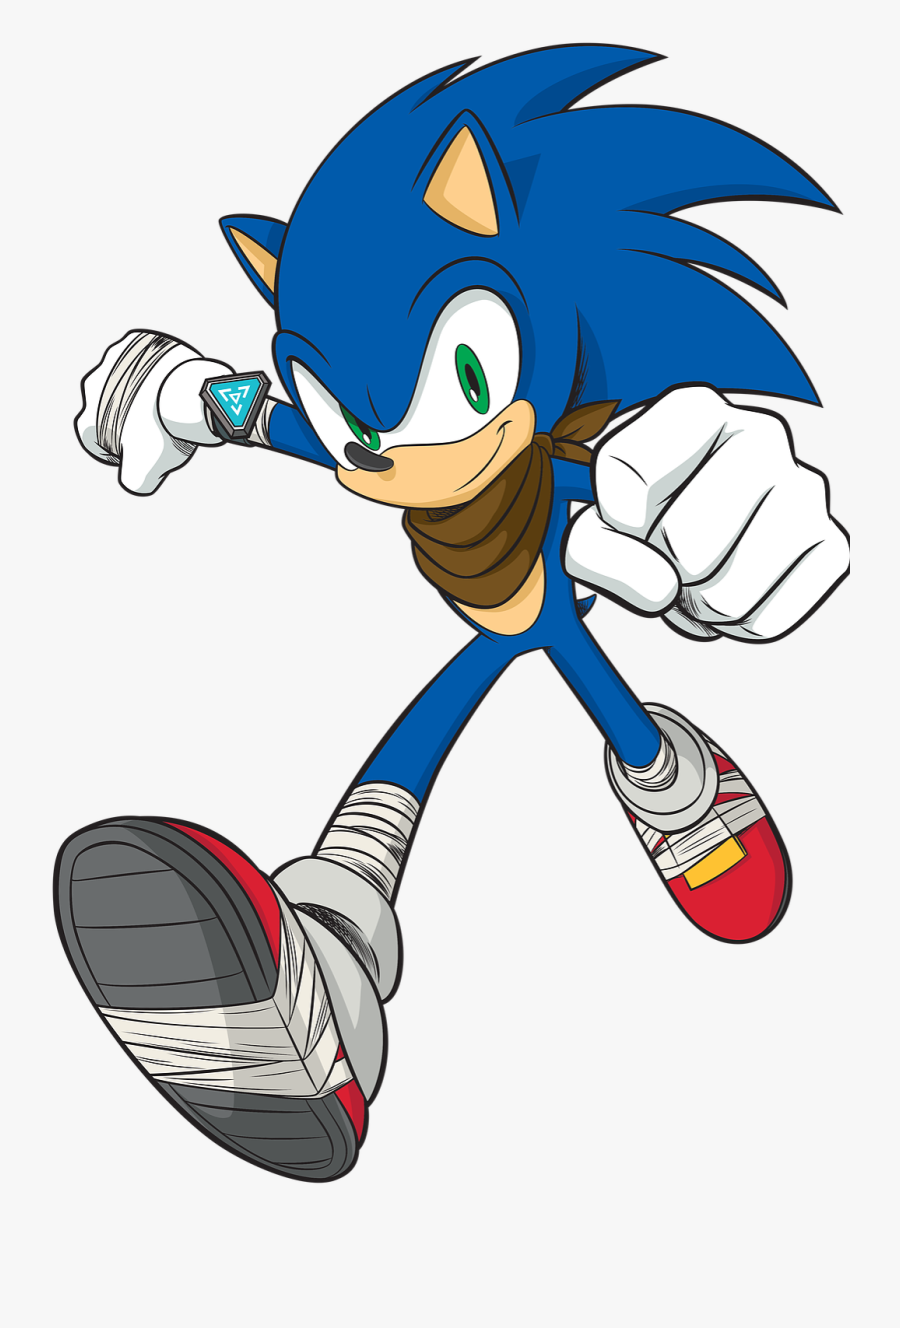 Sonic 2d Sonic Boom Render Sonic Boom Sonic Free Transparent Clipart Clipartkey